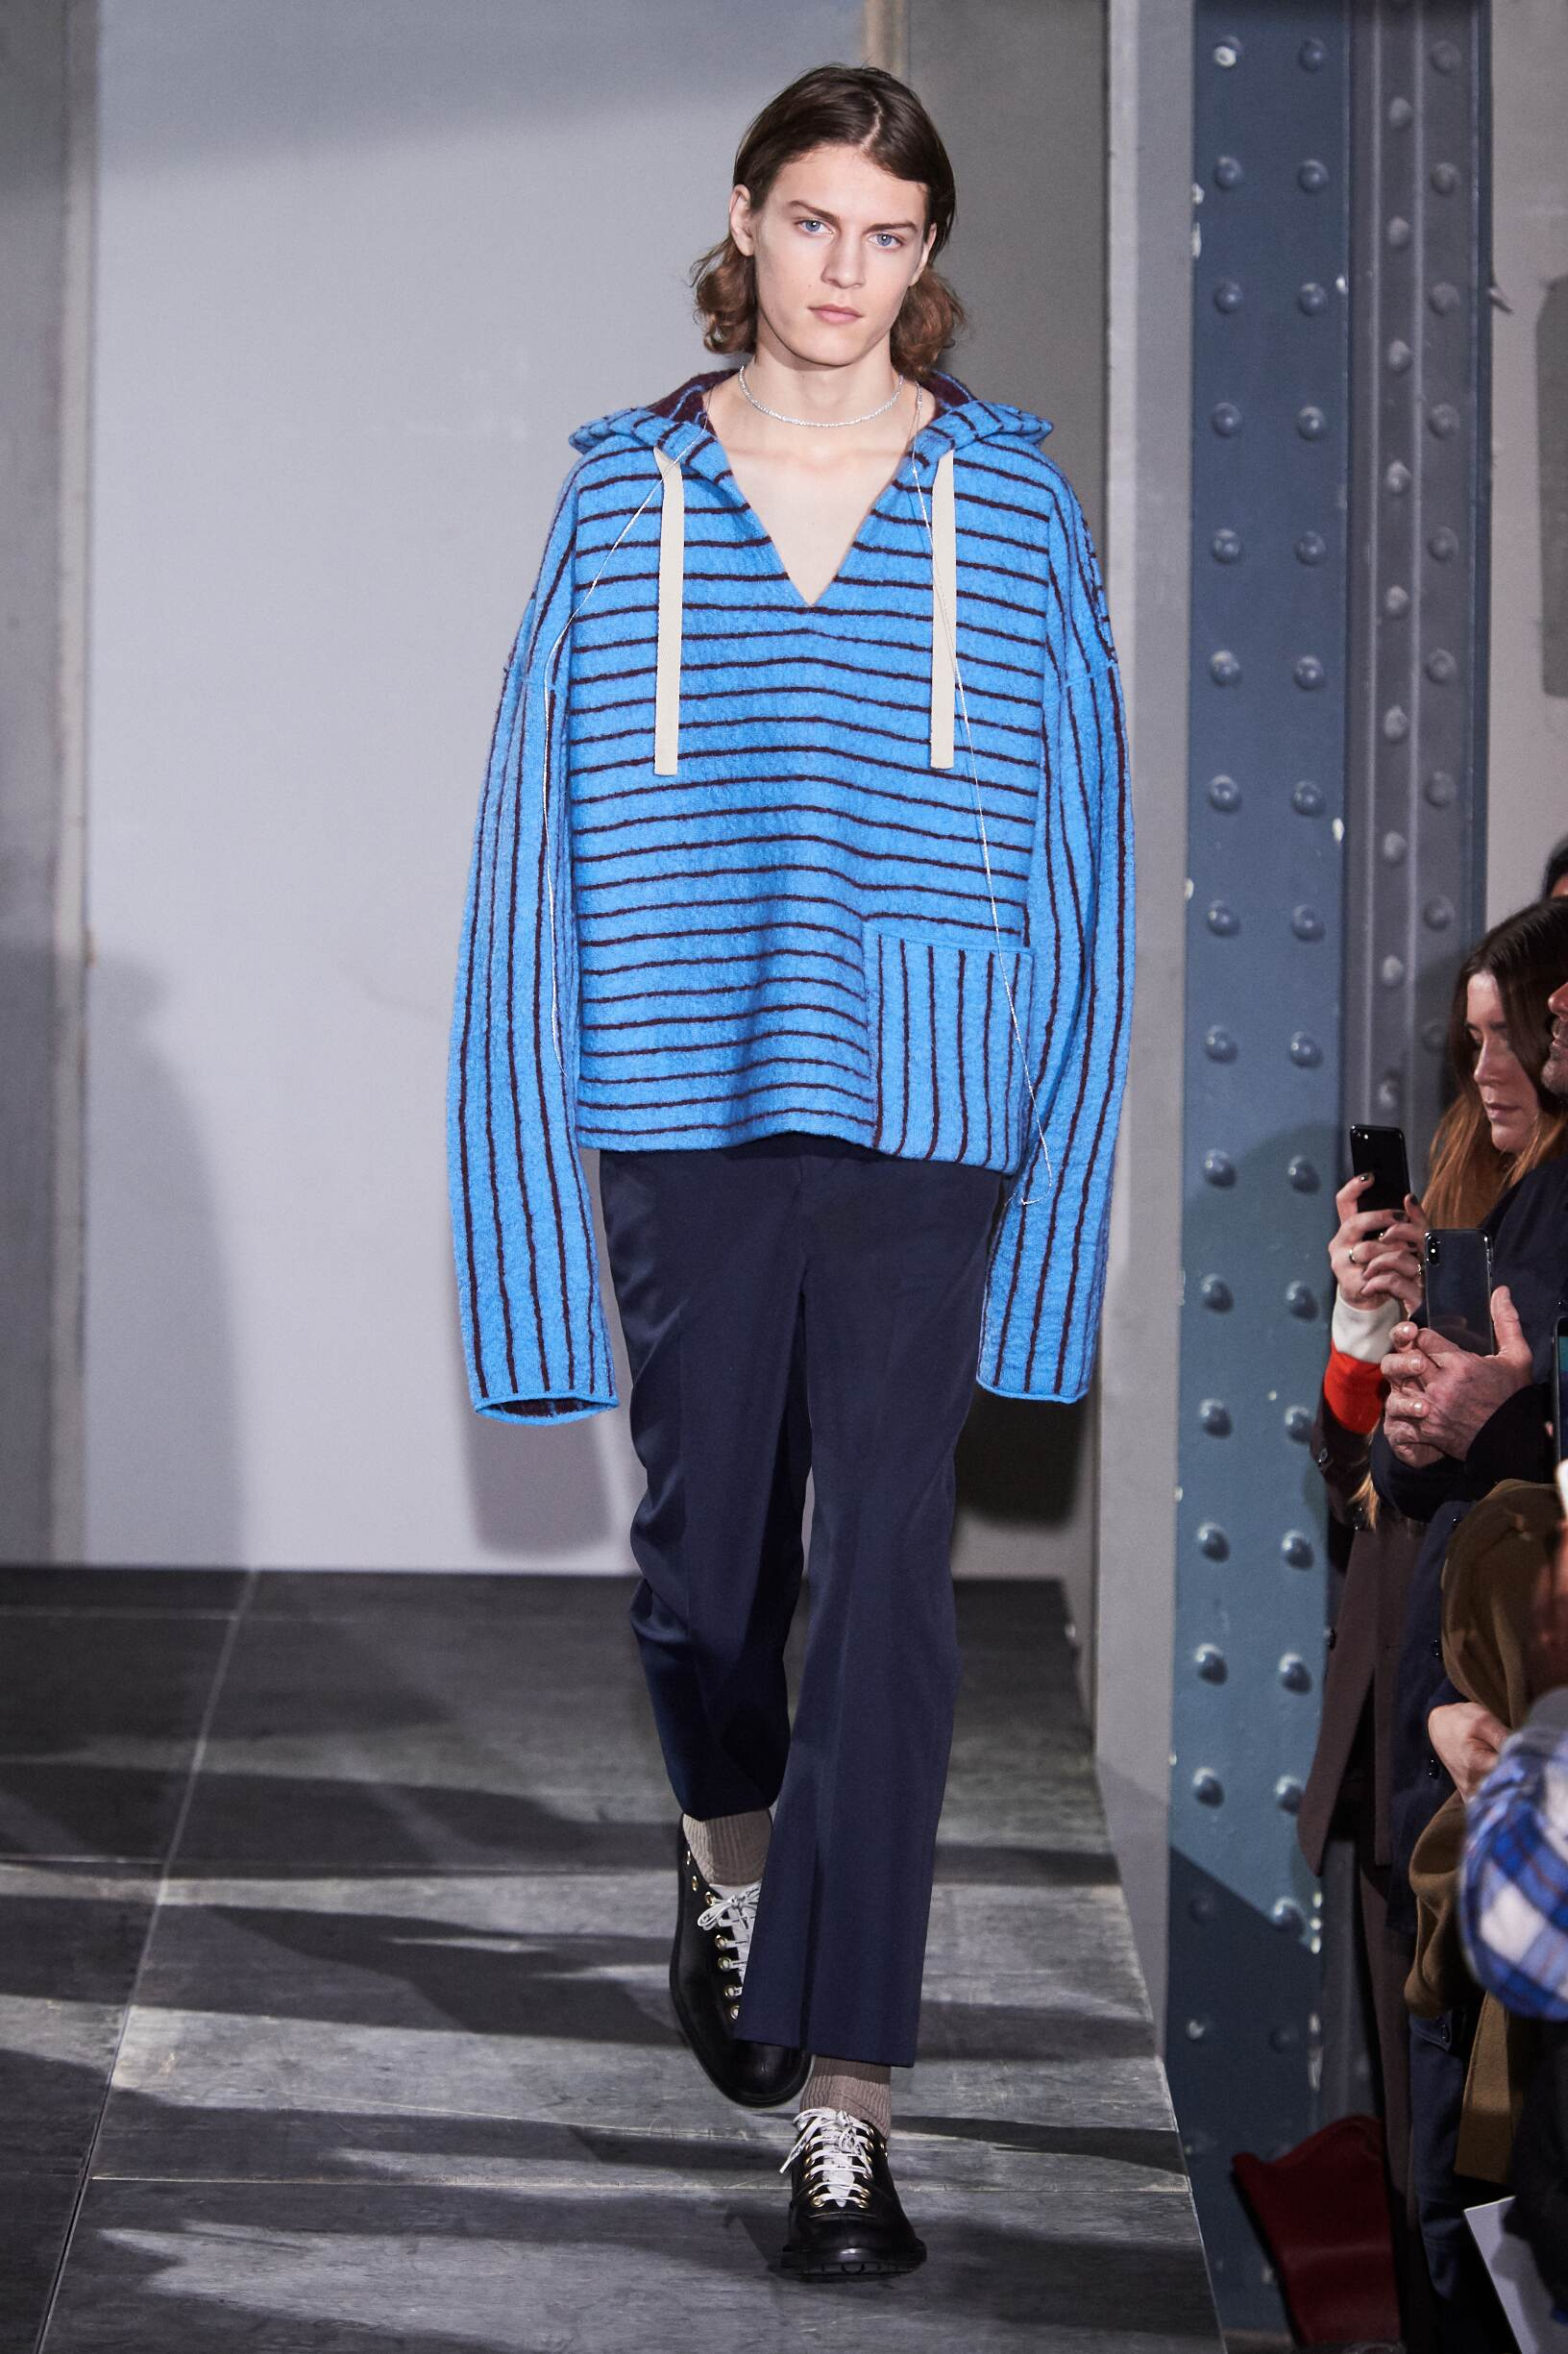 FW 2018-19 Acne Studios Fashion Show